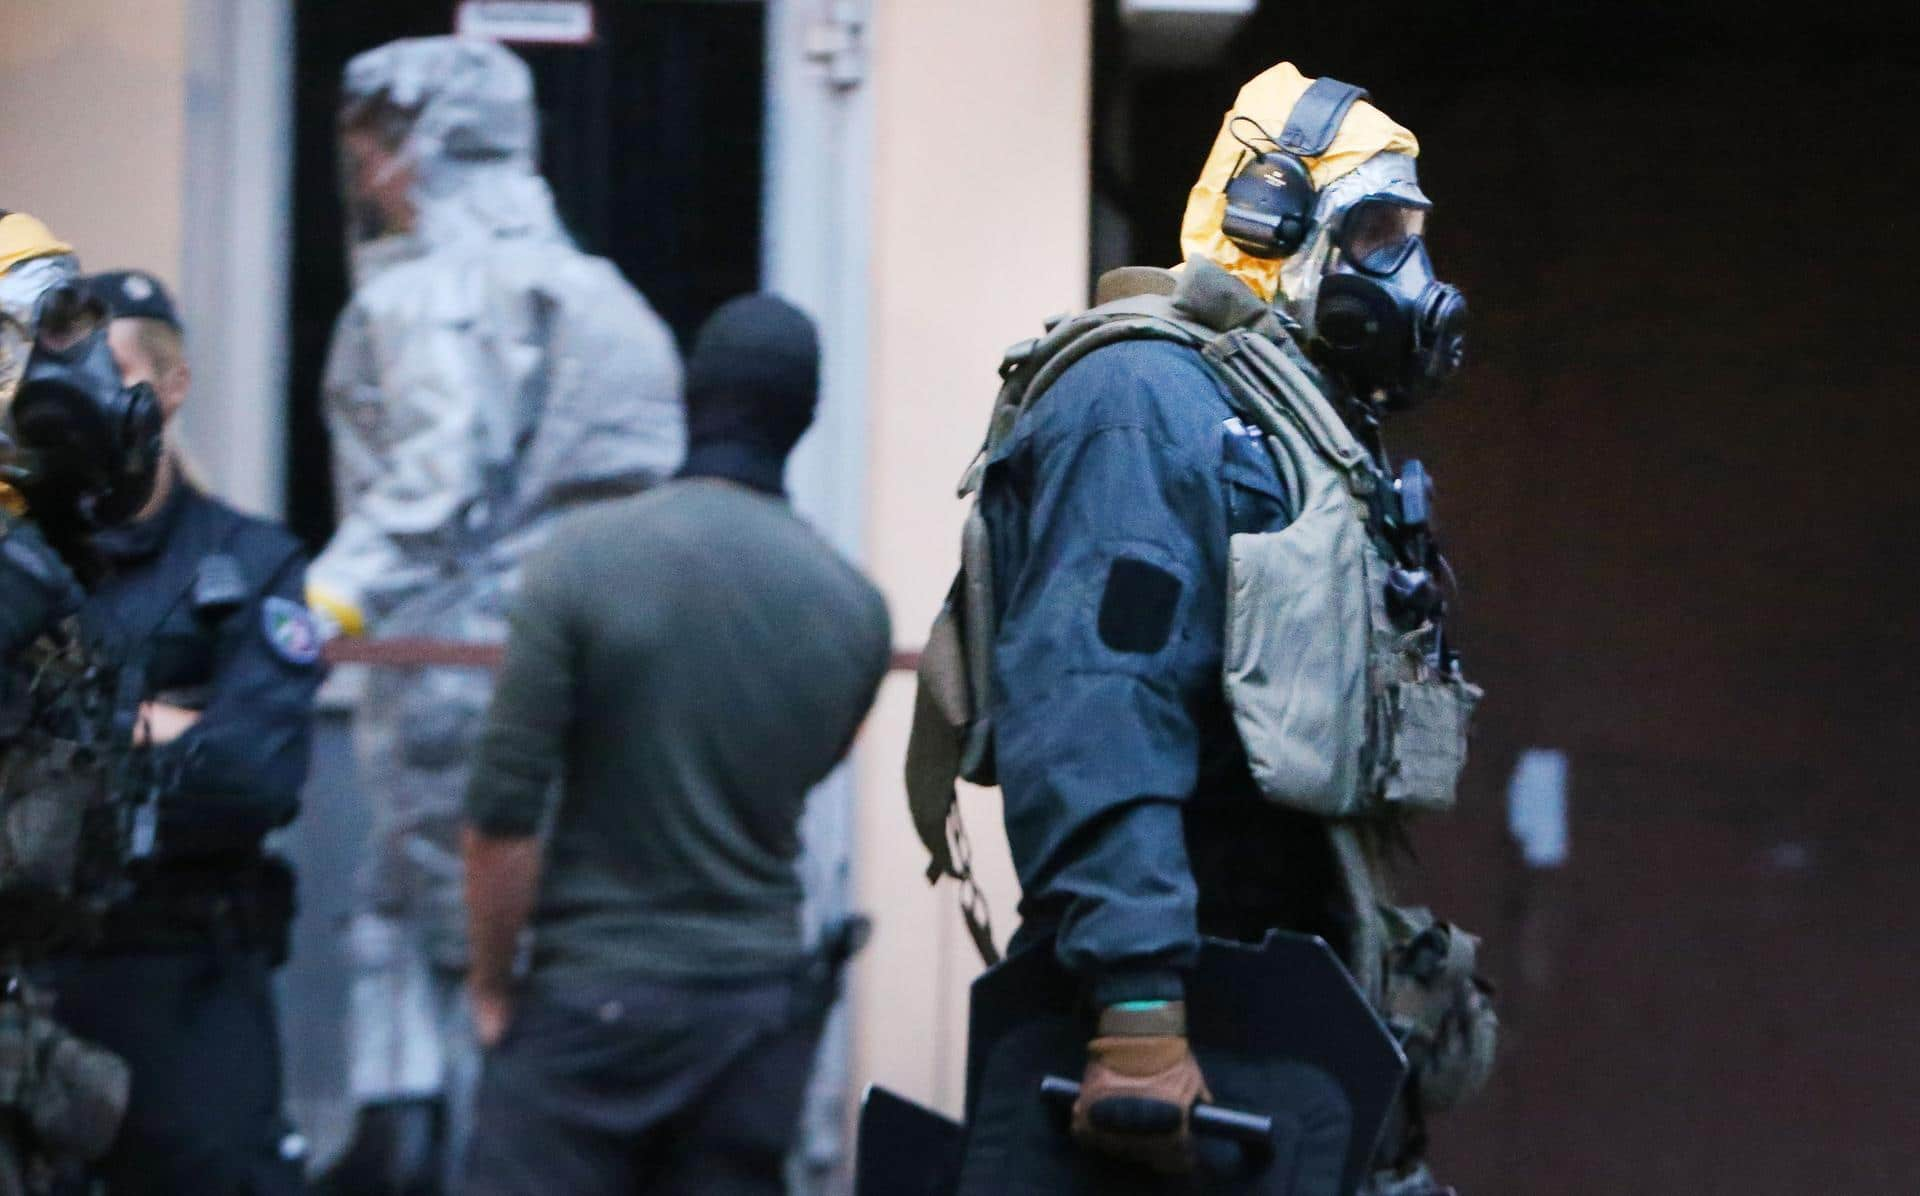 "Picture taken on June 12, 2018 shows police officers of a special unit wearing protective clothes and respiratory masks during an operation in Cologne's Chorweiler district, western Germany, where police found toxic substances after storming a flat. A Tunisian man arrested in Germany is suspected of trying to build a biological weapon using the deadly poison ricin, prosecutors said on June 14, 2018, stressing however there was no indication of any ""concrete attack plans"". - Germany OUT / AFP / dpa / David Young"